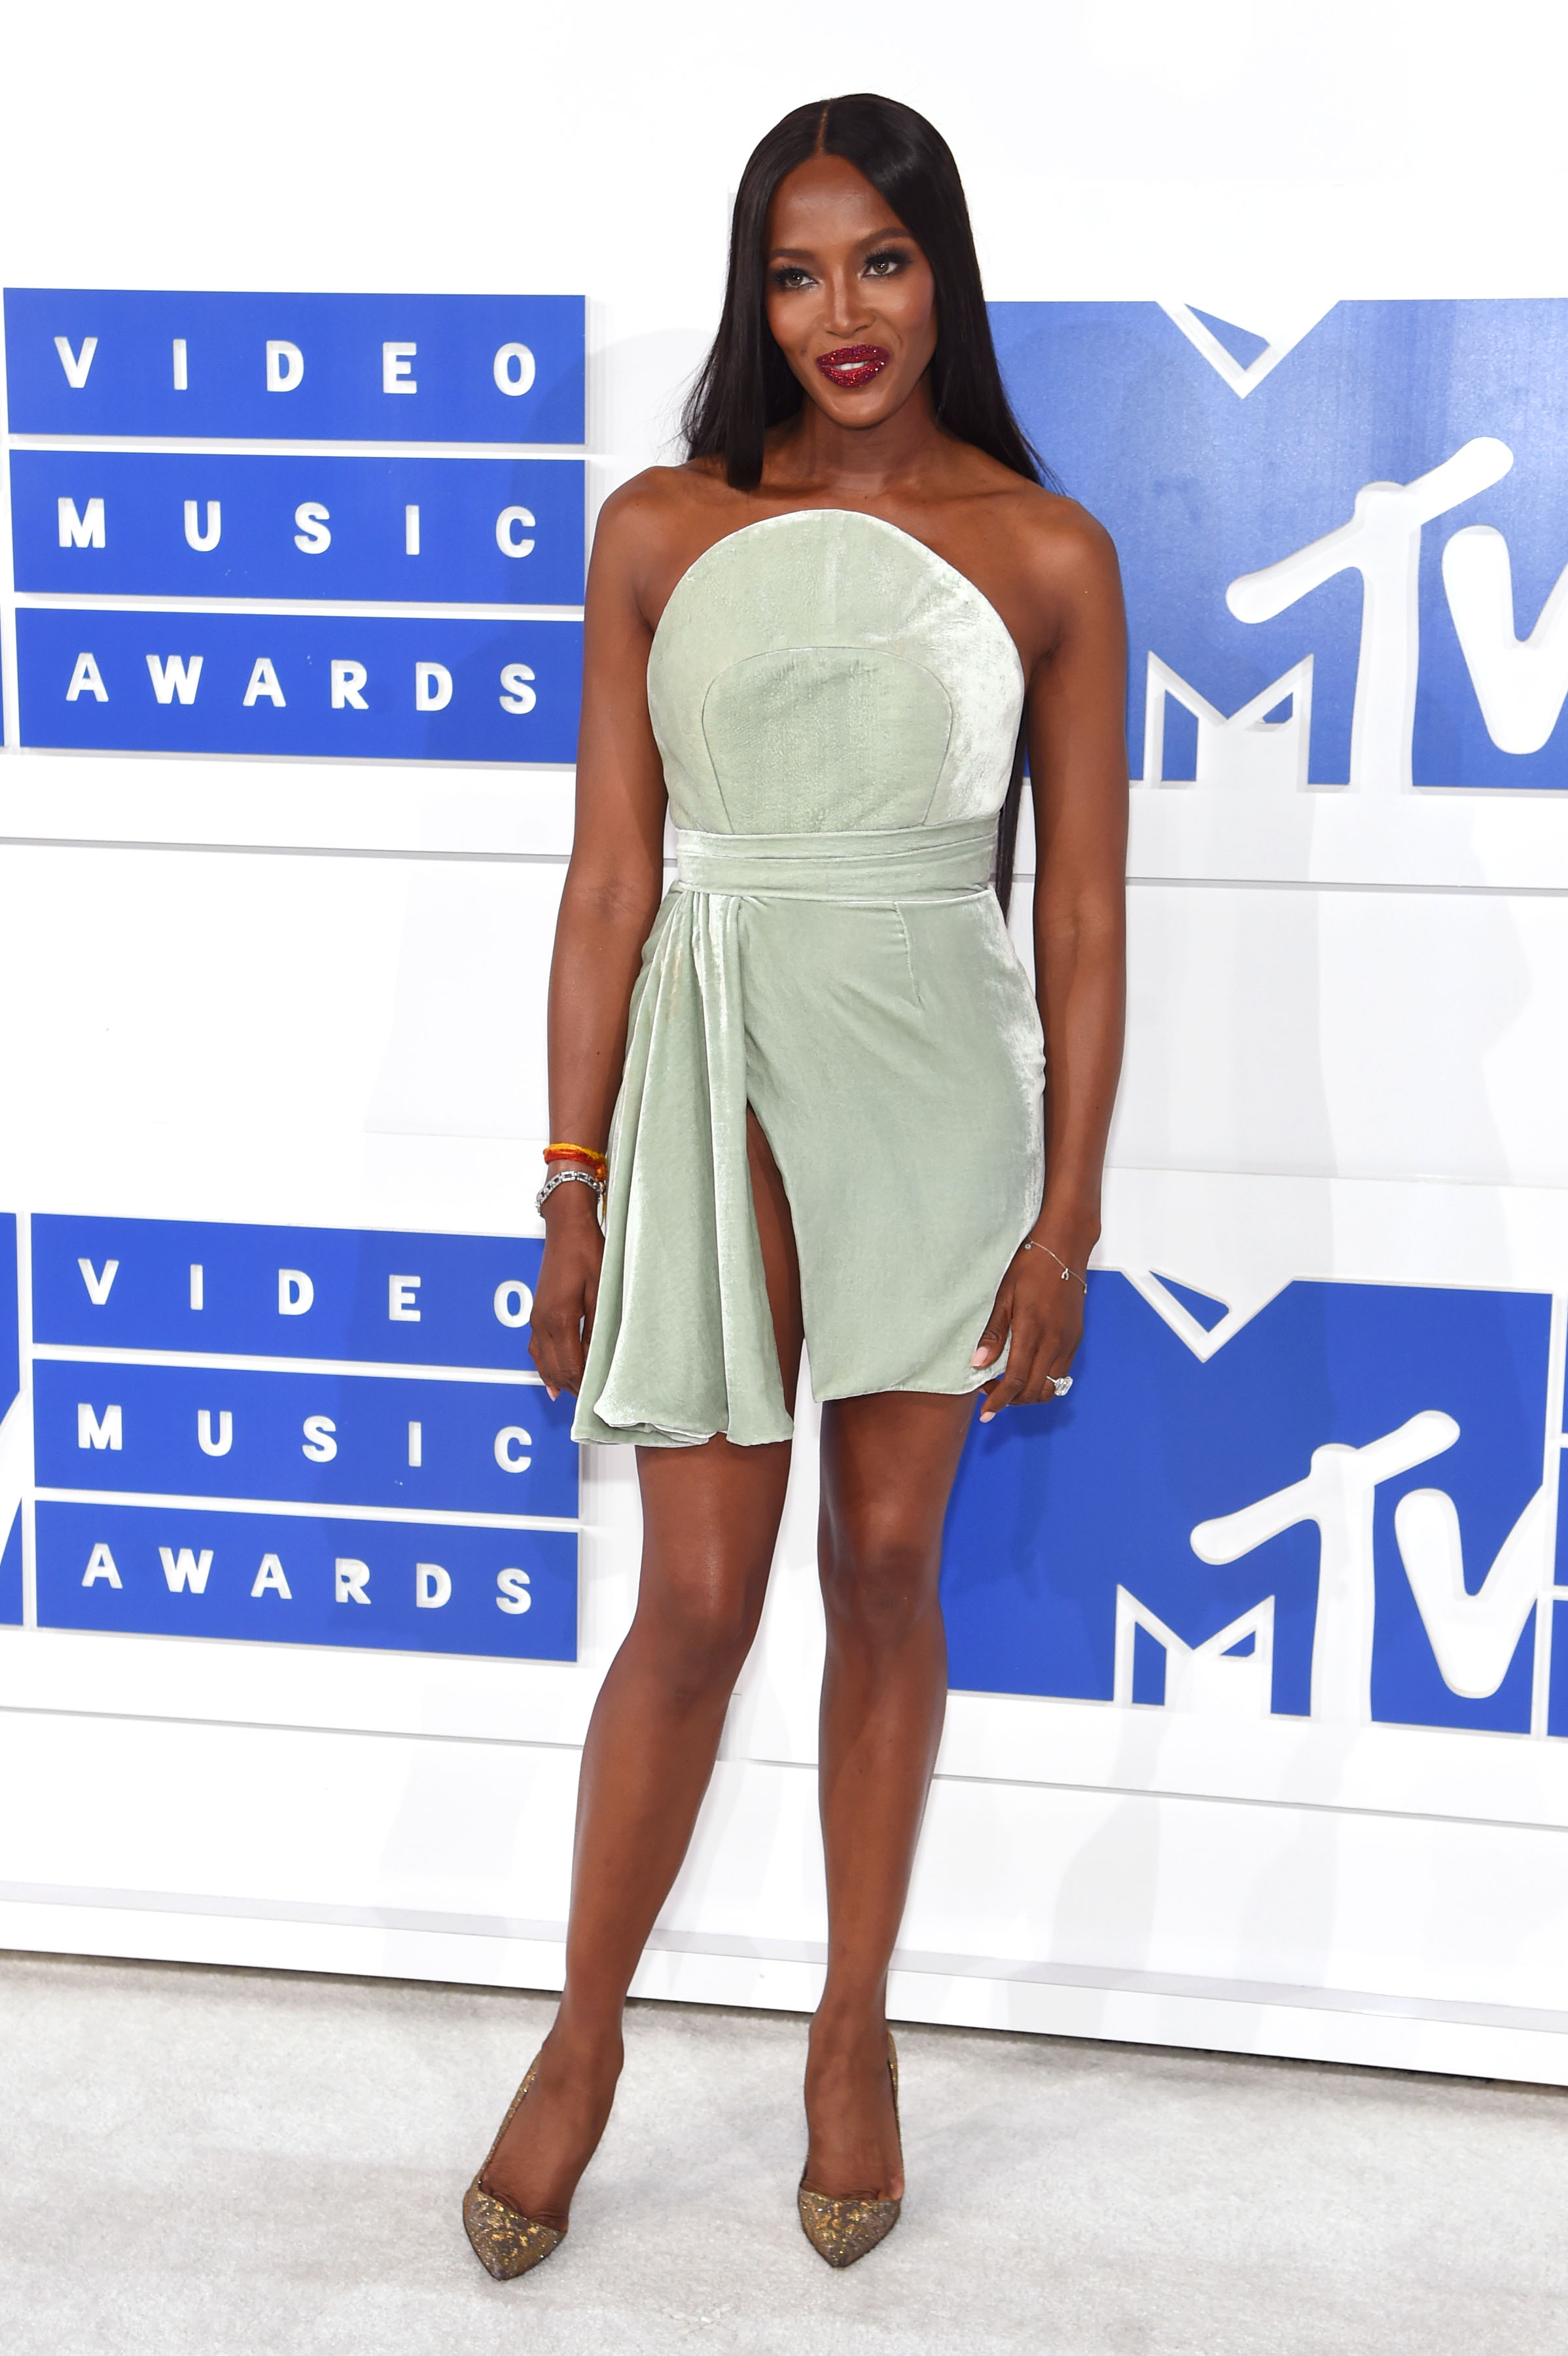 Naomi Campbell attends the 2016 MTV Video Music Awards at Madison Square Garden on Aug. 28, 2016 in New York City.